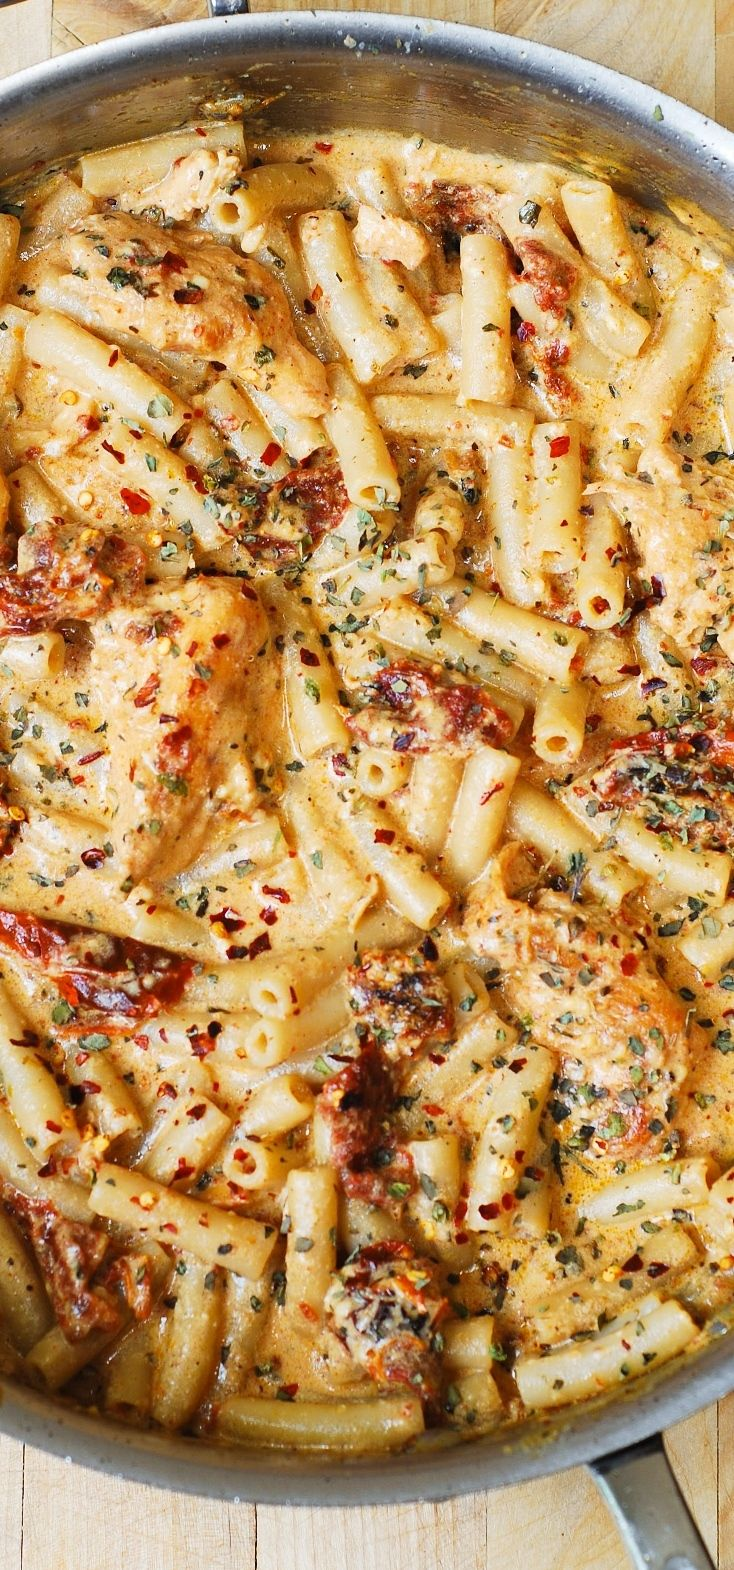 Chicken with sun-dried tomatoes and penne pasta in a creamy mozzarella cheese sauce.